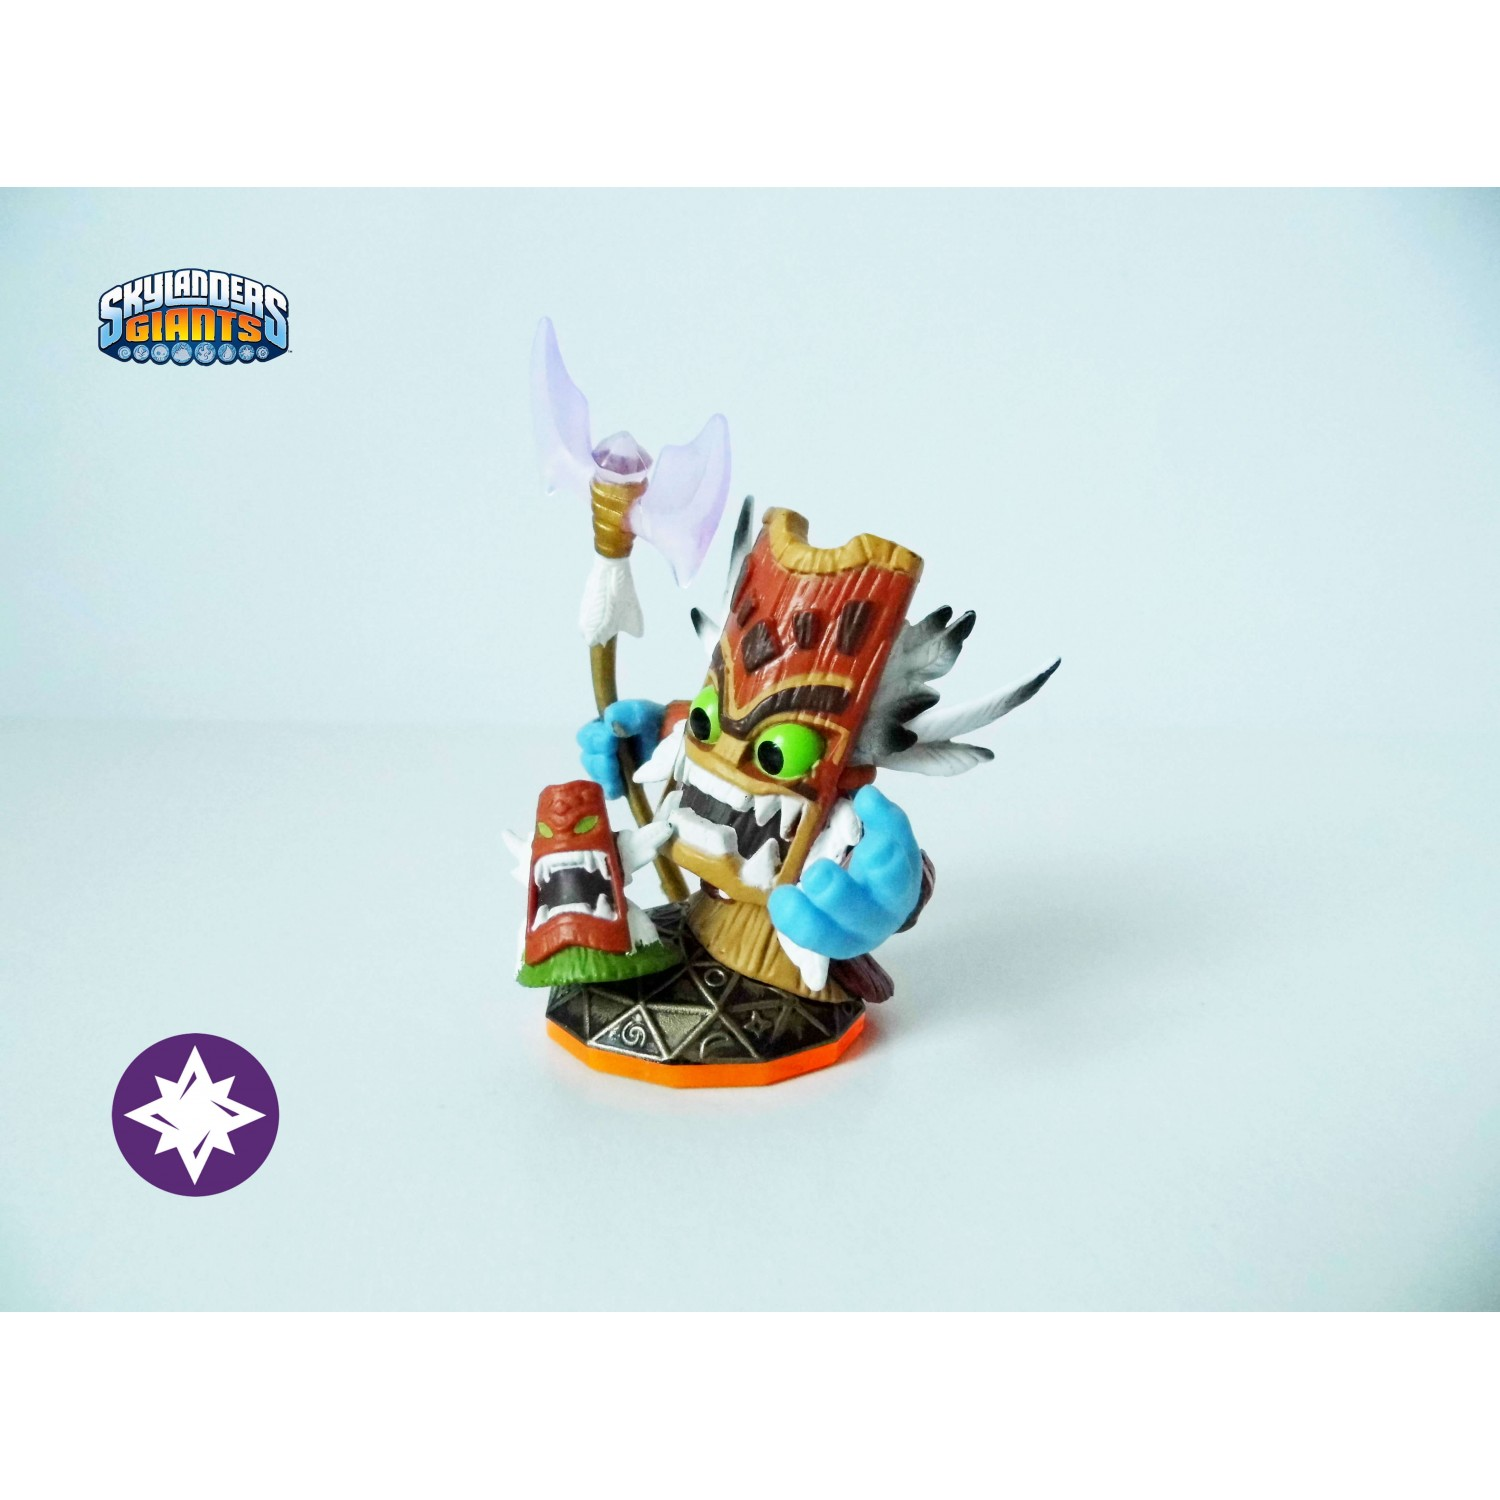 Skylanders Giants - Double Trouble játékfigura